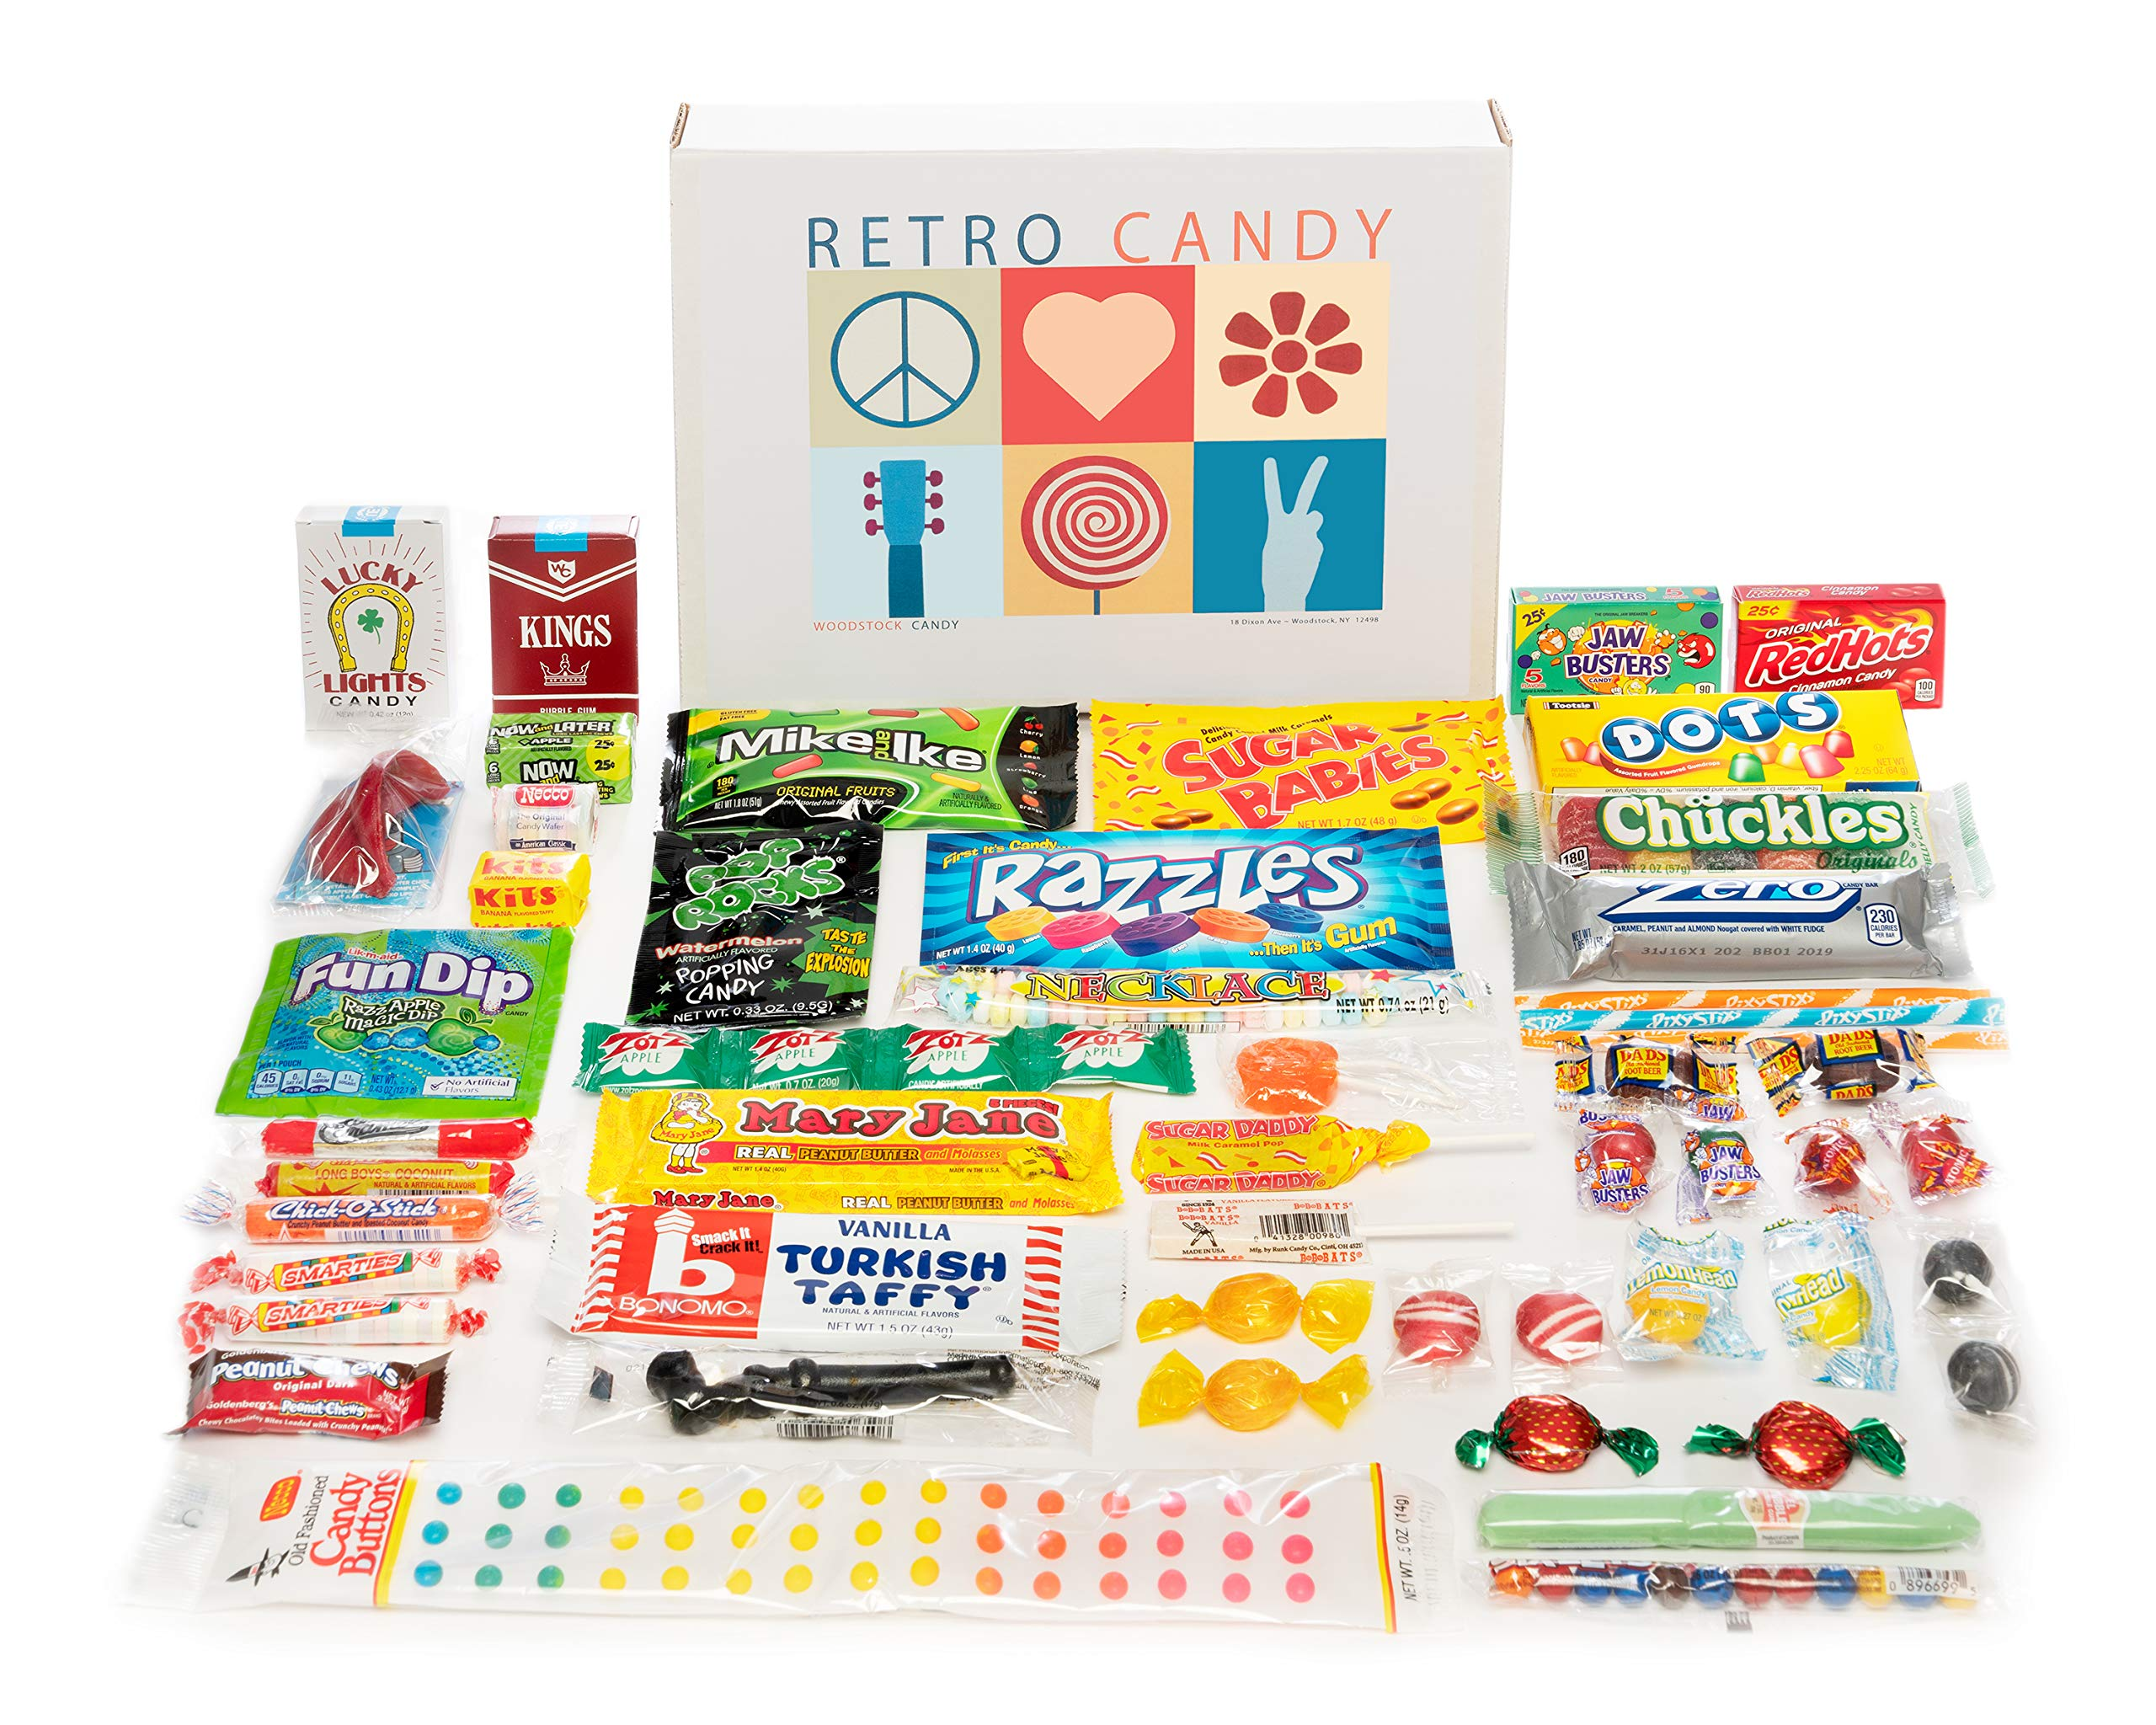 Woodstock Candy ~ Care Package Classic Nostalgic Retro Candy Assortment Gift Box for Men and Women